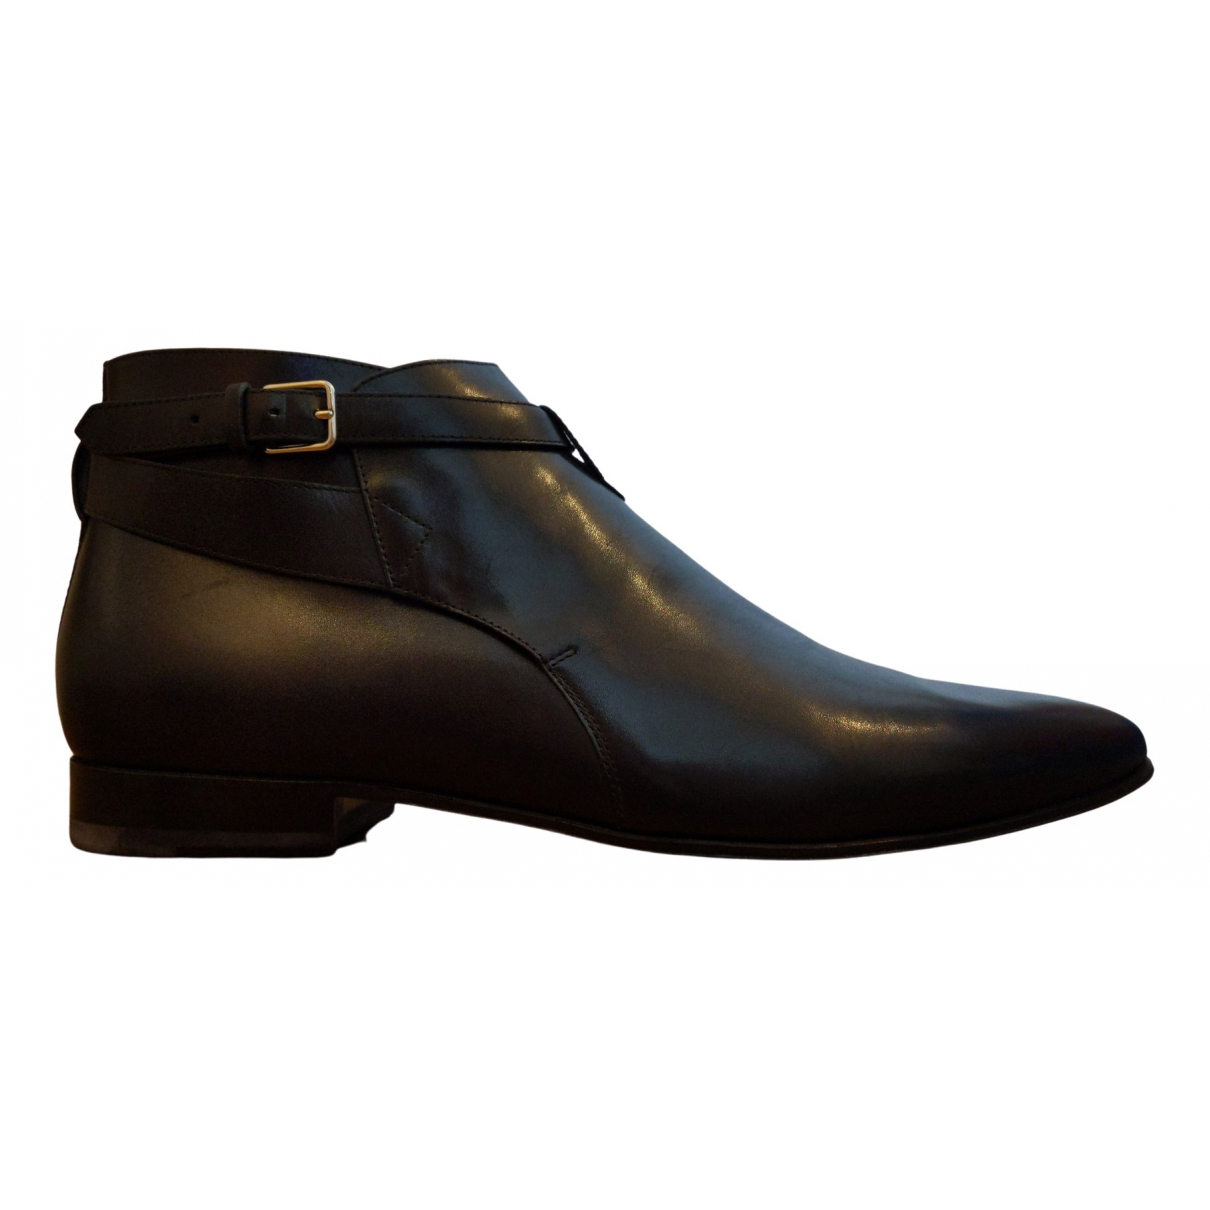 Saint Laurent \N Black Leather Boots for Men 44.5 EU